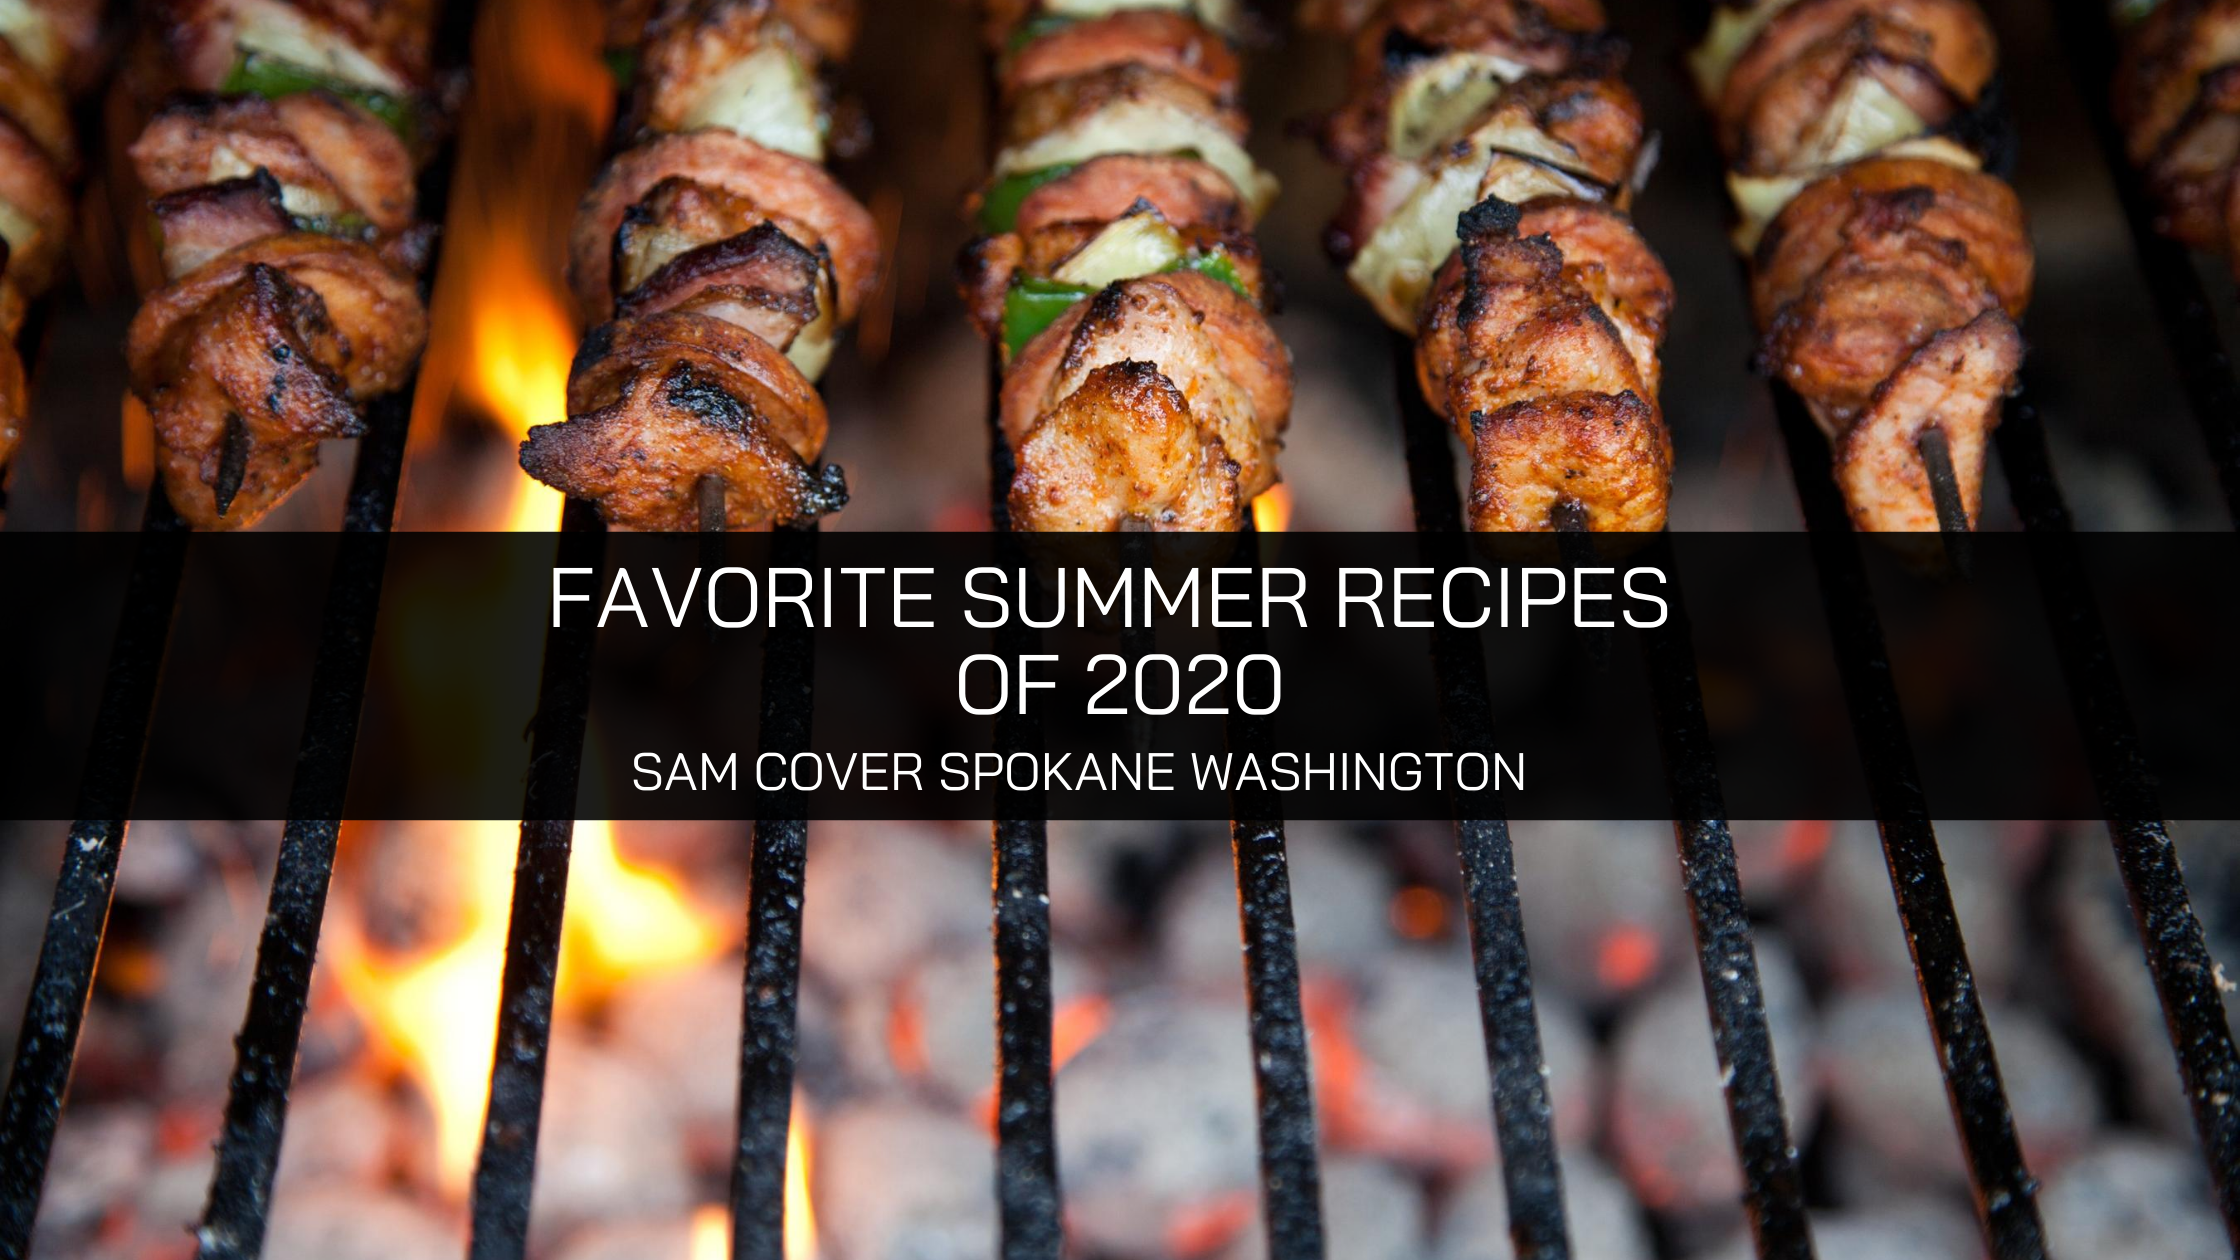 Sam Cover Spokane Washington